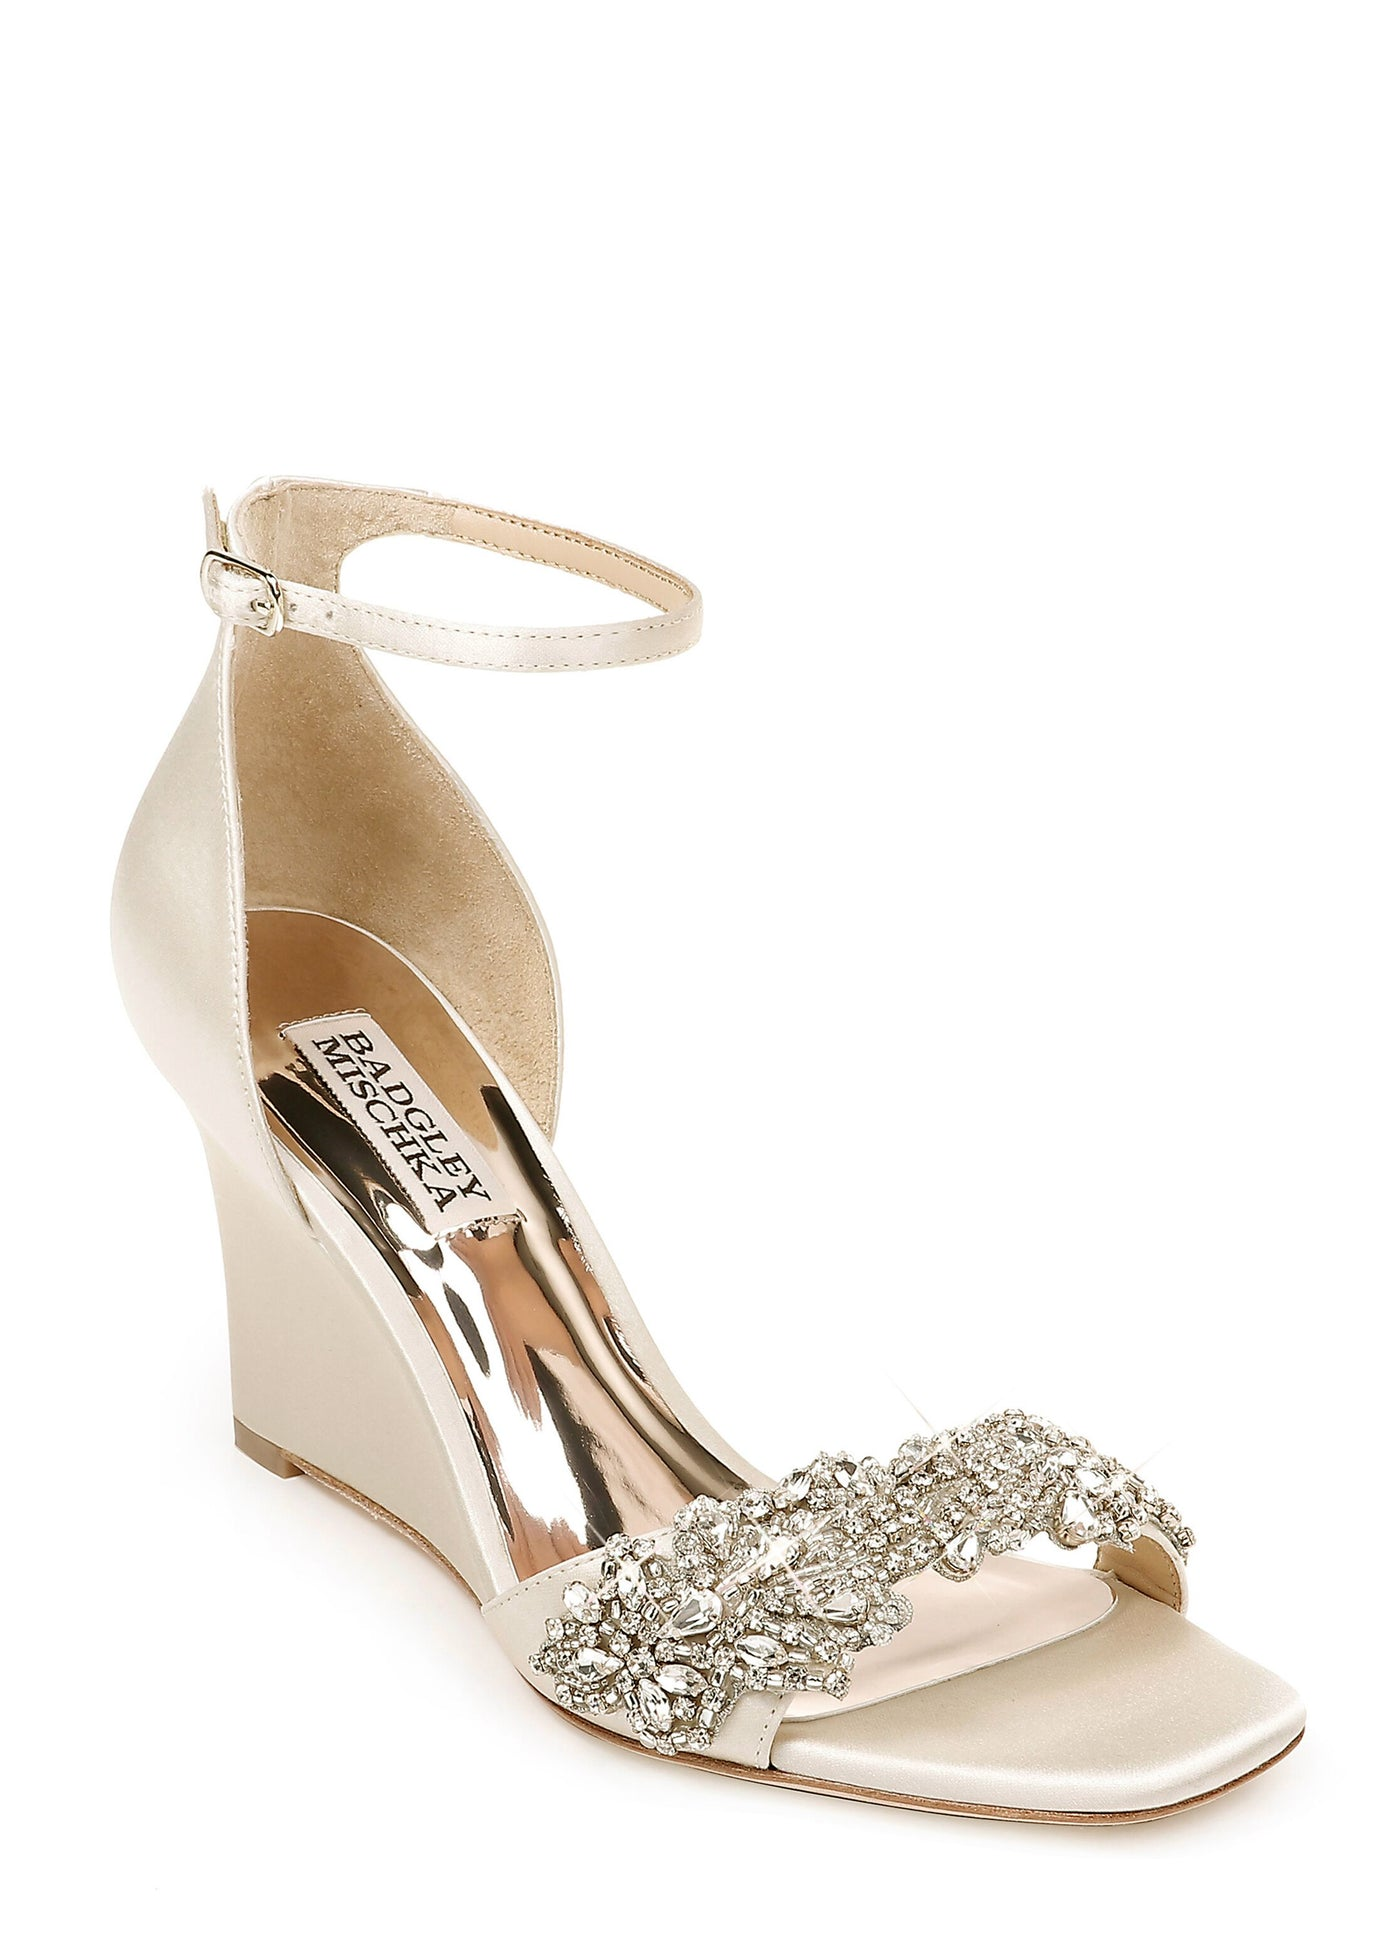 Aliyah - Coming Soon, Shoes, Badgley Mischka - Eternal Bridal